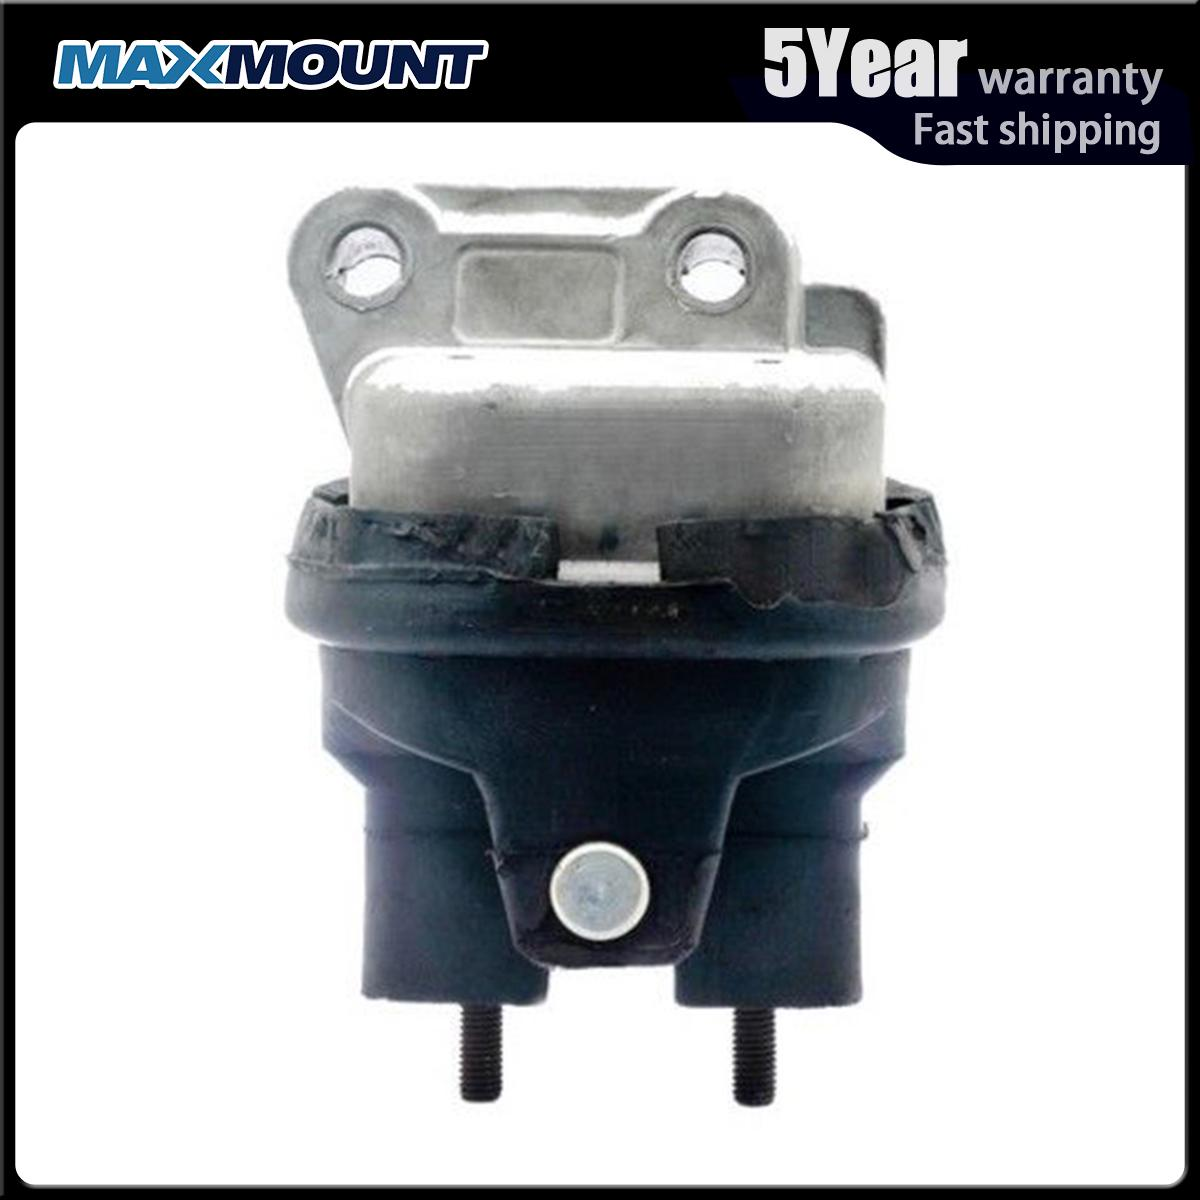 Engine For 2008 Dodge Charger: For 2006-2010 Dodge Charger 5.7L Engine Motor Mount Front